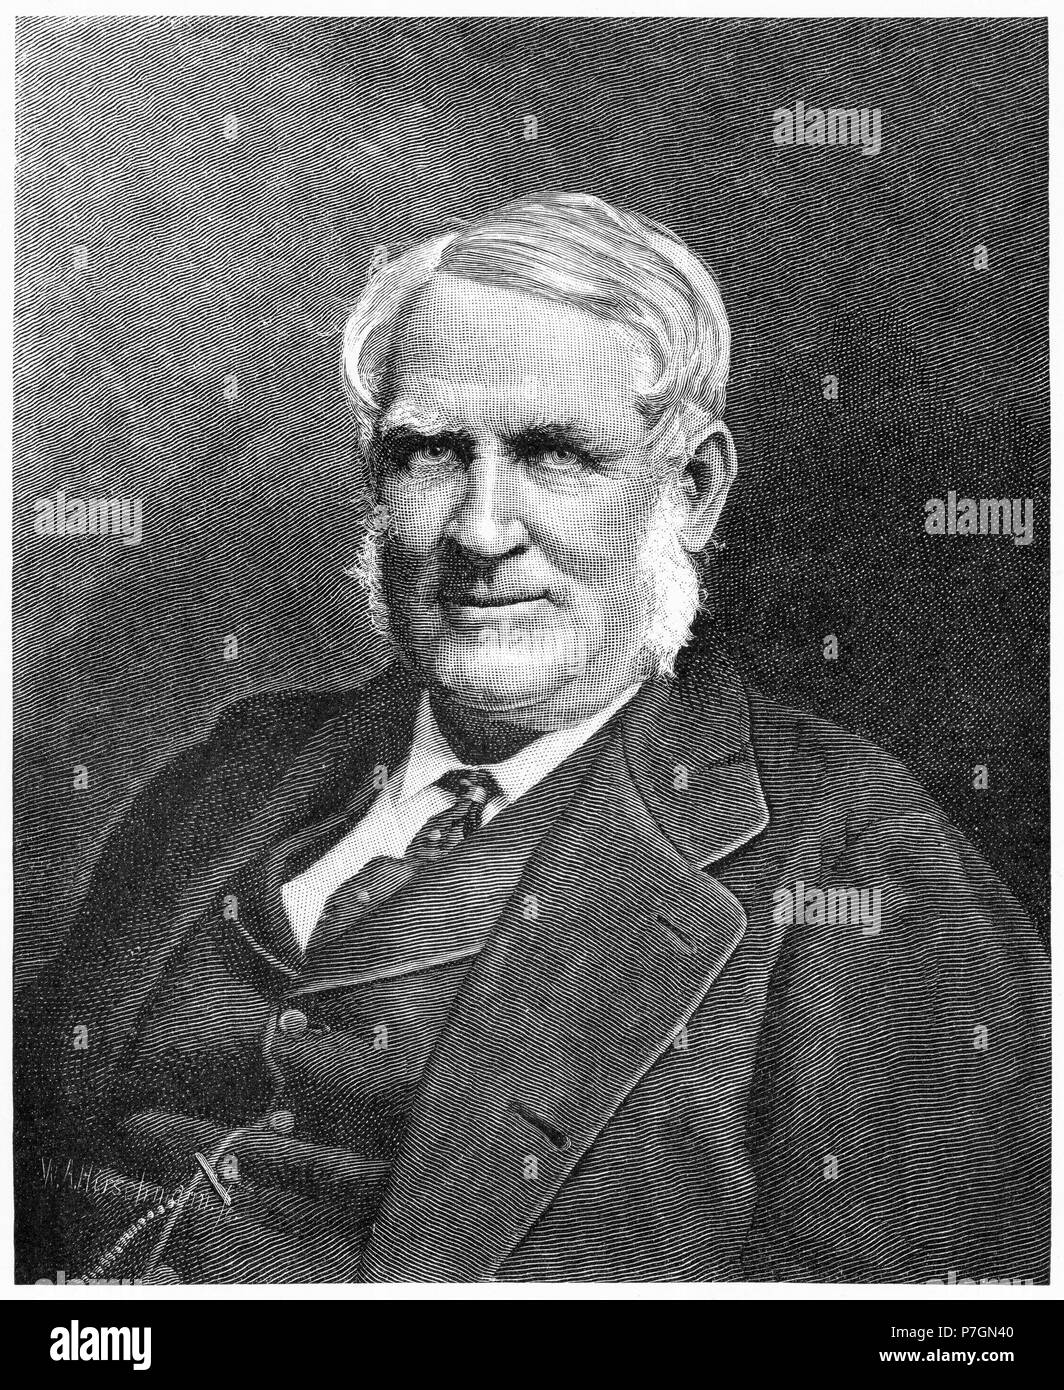 Engraving of Sir George Ferguson Bowen, GCMG,  (1821 – 1899) British author and colonial administrator of the Ionian Islands, Queensland, New Zealand, Victoria, Mauritius and Hong Kong. From the Picturesque Atlas of Australasia Vol 2, 1886 - Stock Image